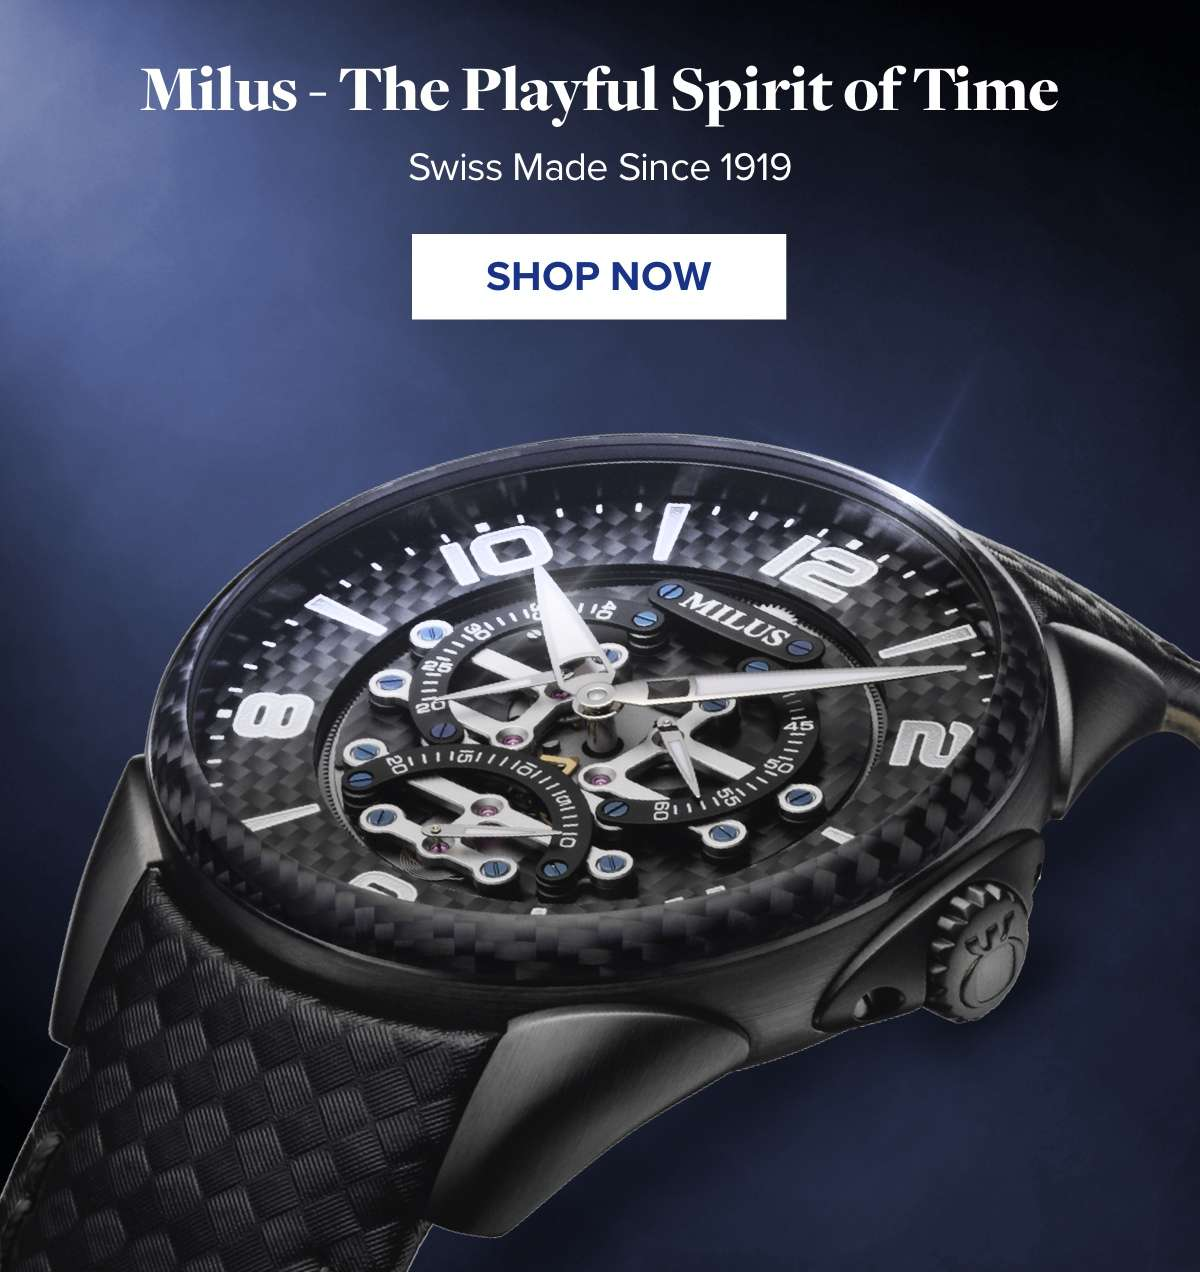 Milus - The Playful Spirit of Time Swiss Made Since 1919